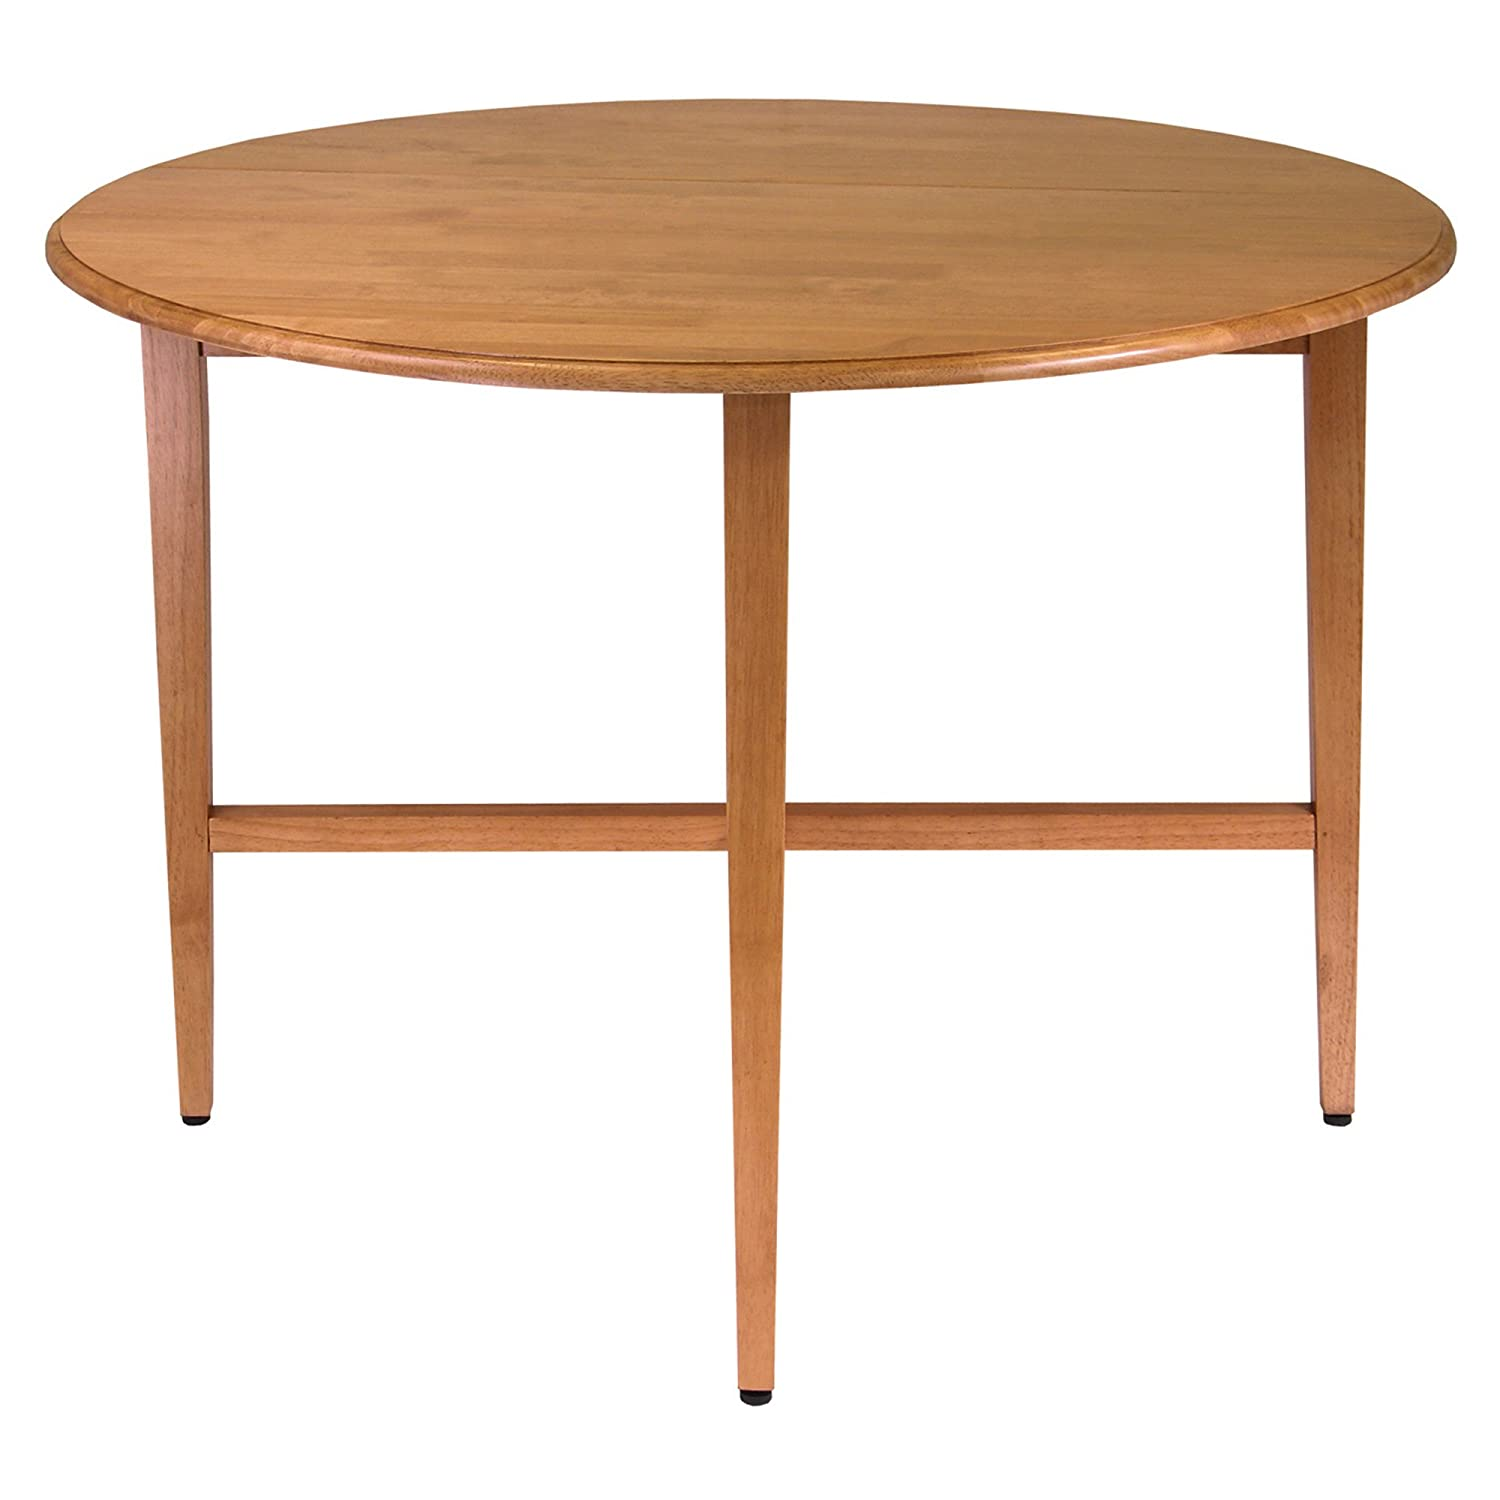 Winsome Wood 42-Inch Round Drop Leaf Table 34942